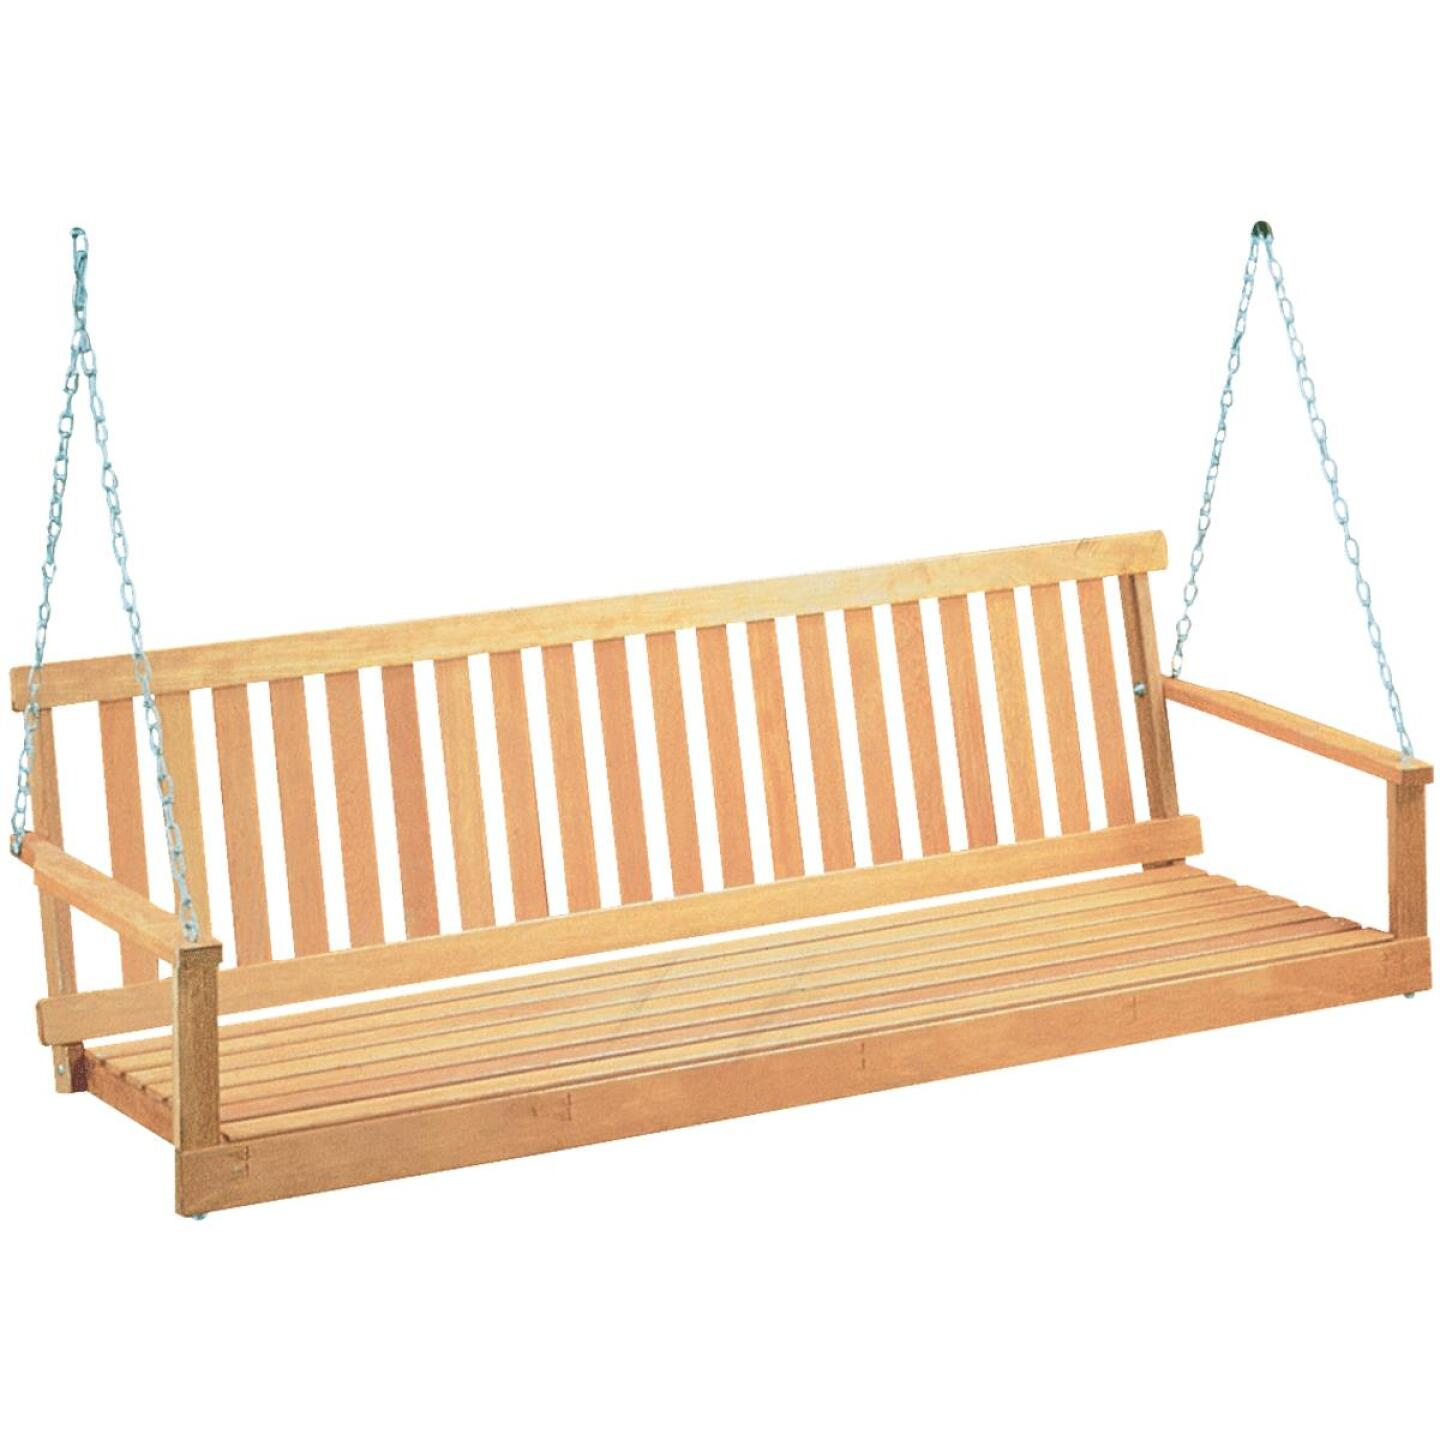 Jack Post Jennings 48 In. W. x 17.5 In. H. x 21-3/4 In. D. Natural Cypress Porch Swing Image 1